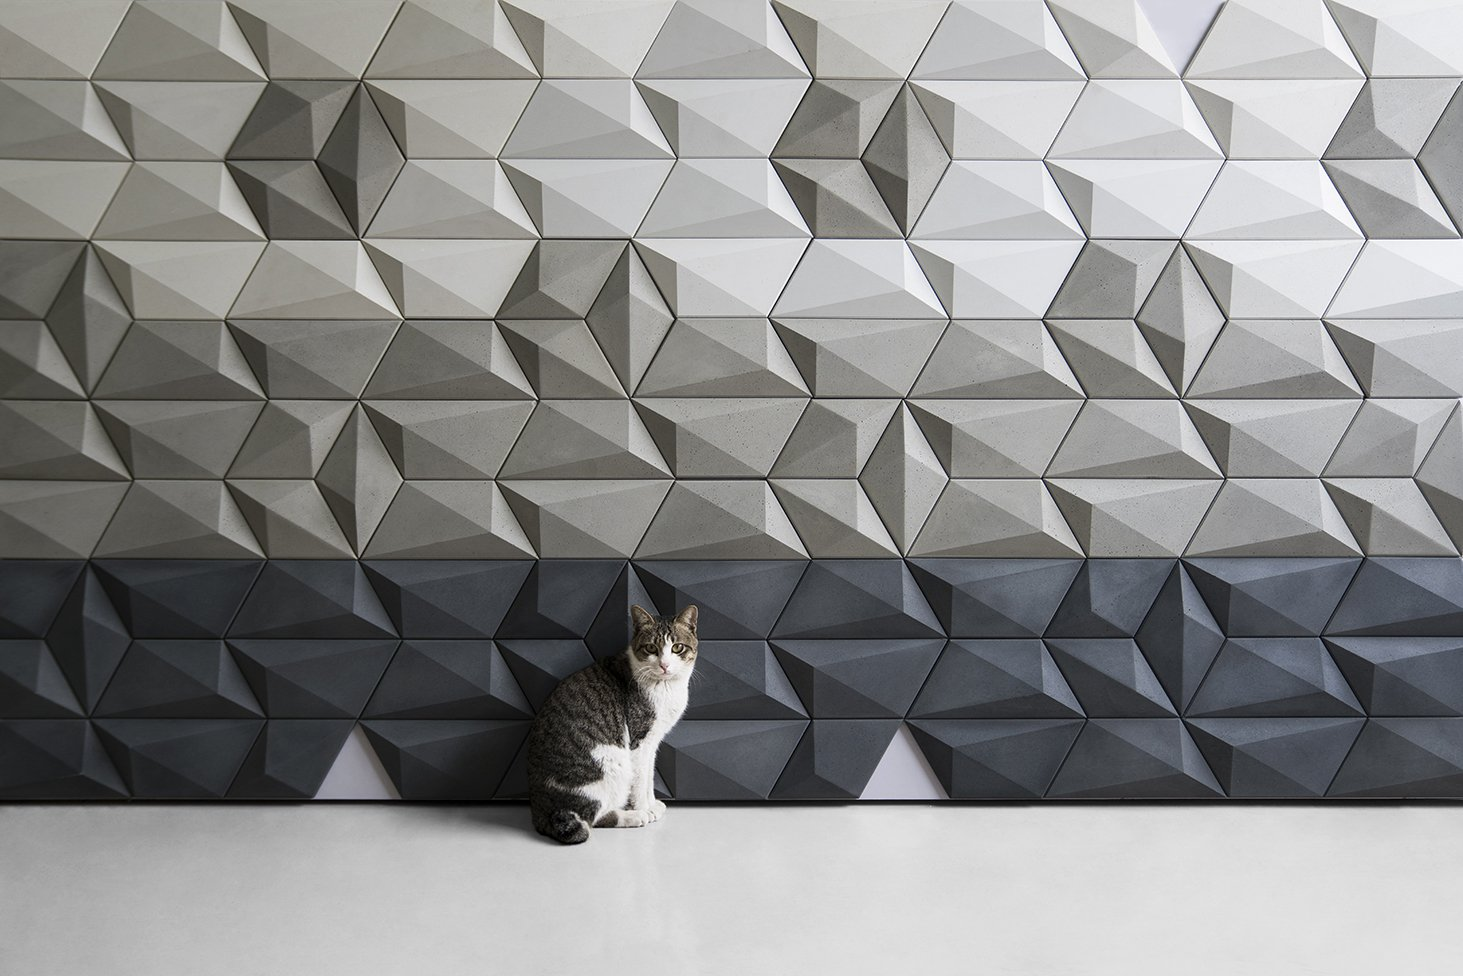 SAN-M Concrete Decorative Wall Tile, Wall Tile - Luvurwall